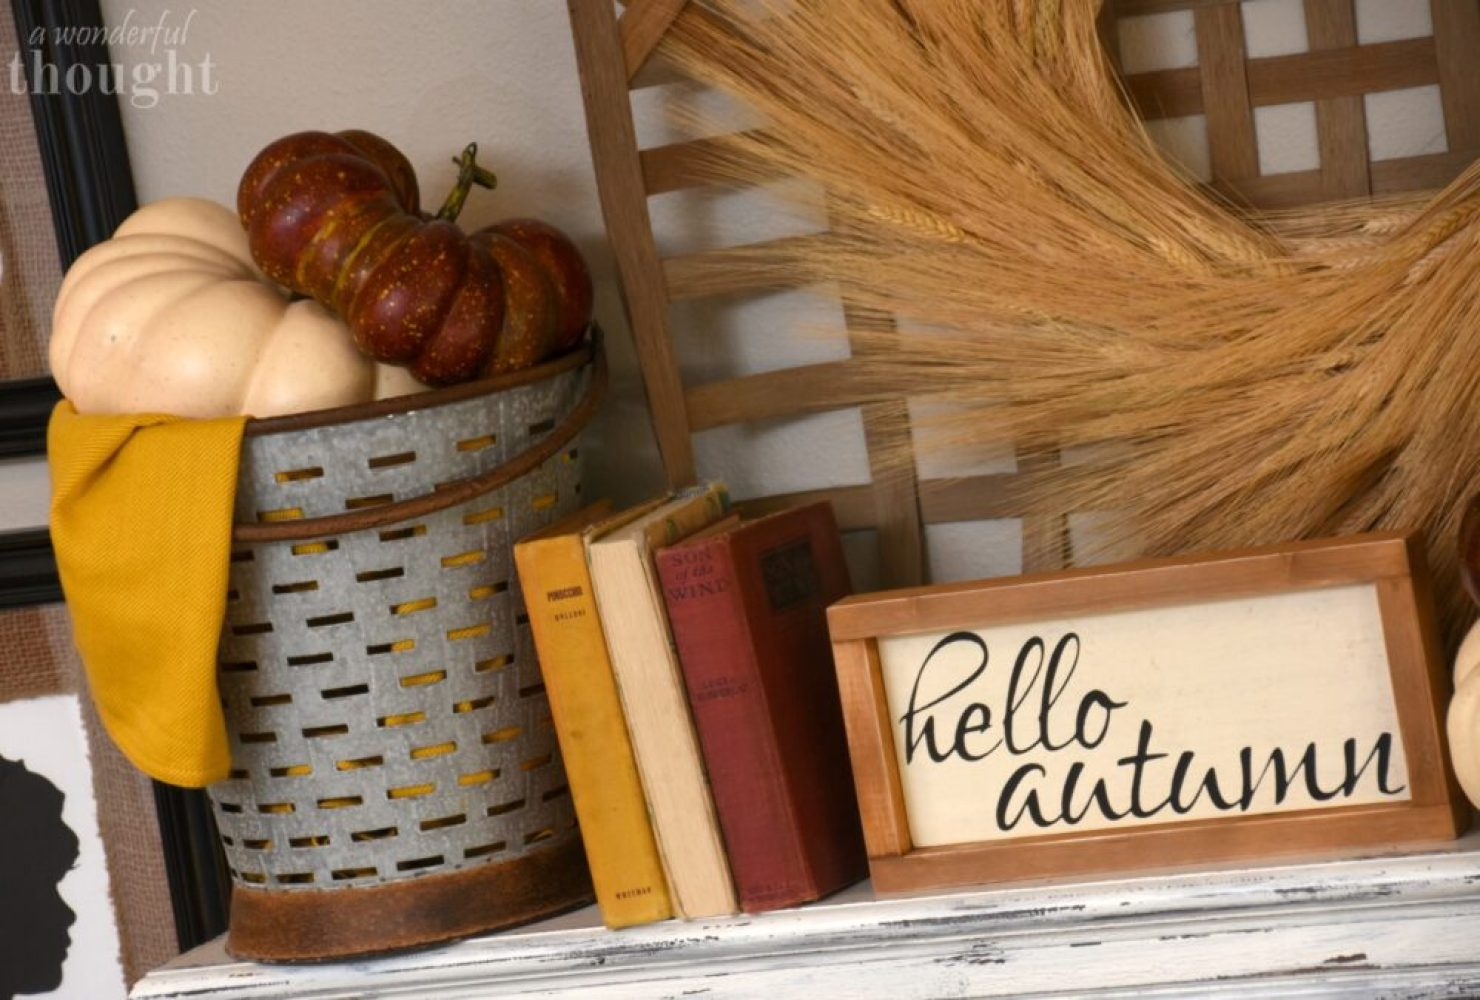 Burgundy and Mustard Fall Mantel Decor | awonderfulthought.com